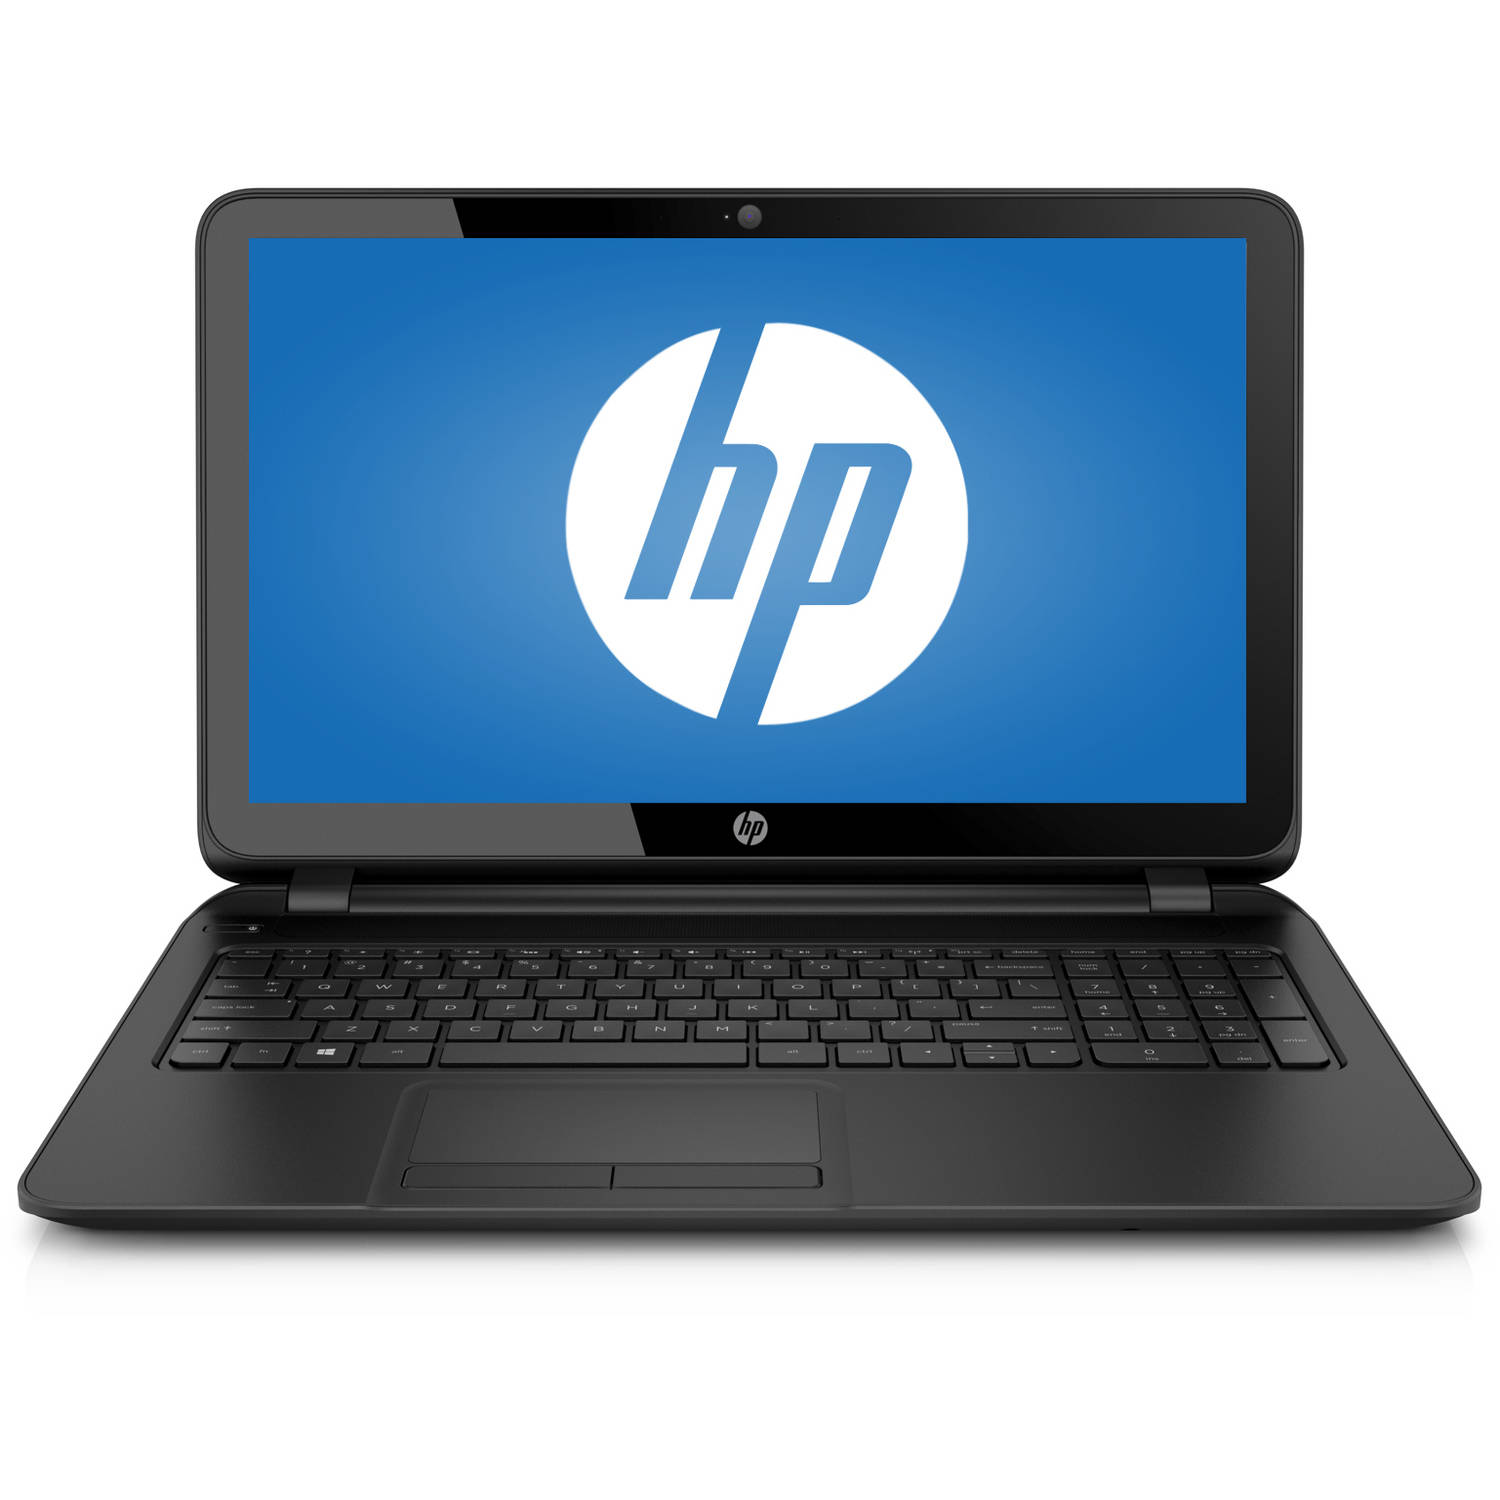 """HP Black 15.6"""" 15-f024wm Laptop PC with Intel Pentium N3530 Processor, 4GB Memory, Touchscreen, 500GB Hard Drive and Windows 8.1 (Eligible for Free Windows 10 Upgrade)"""